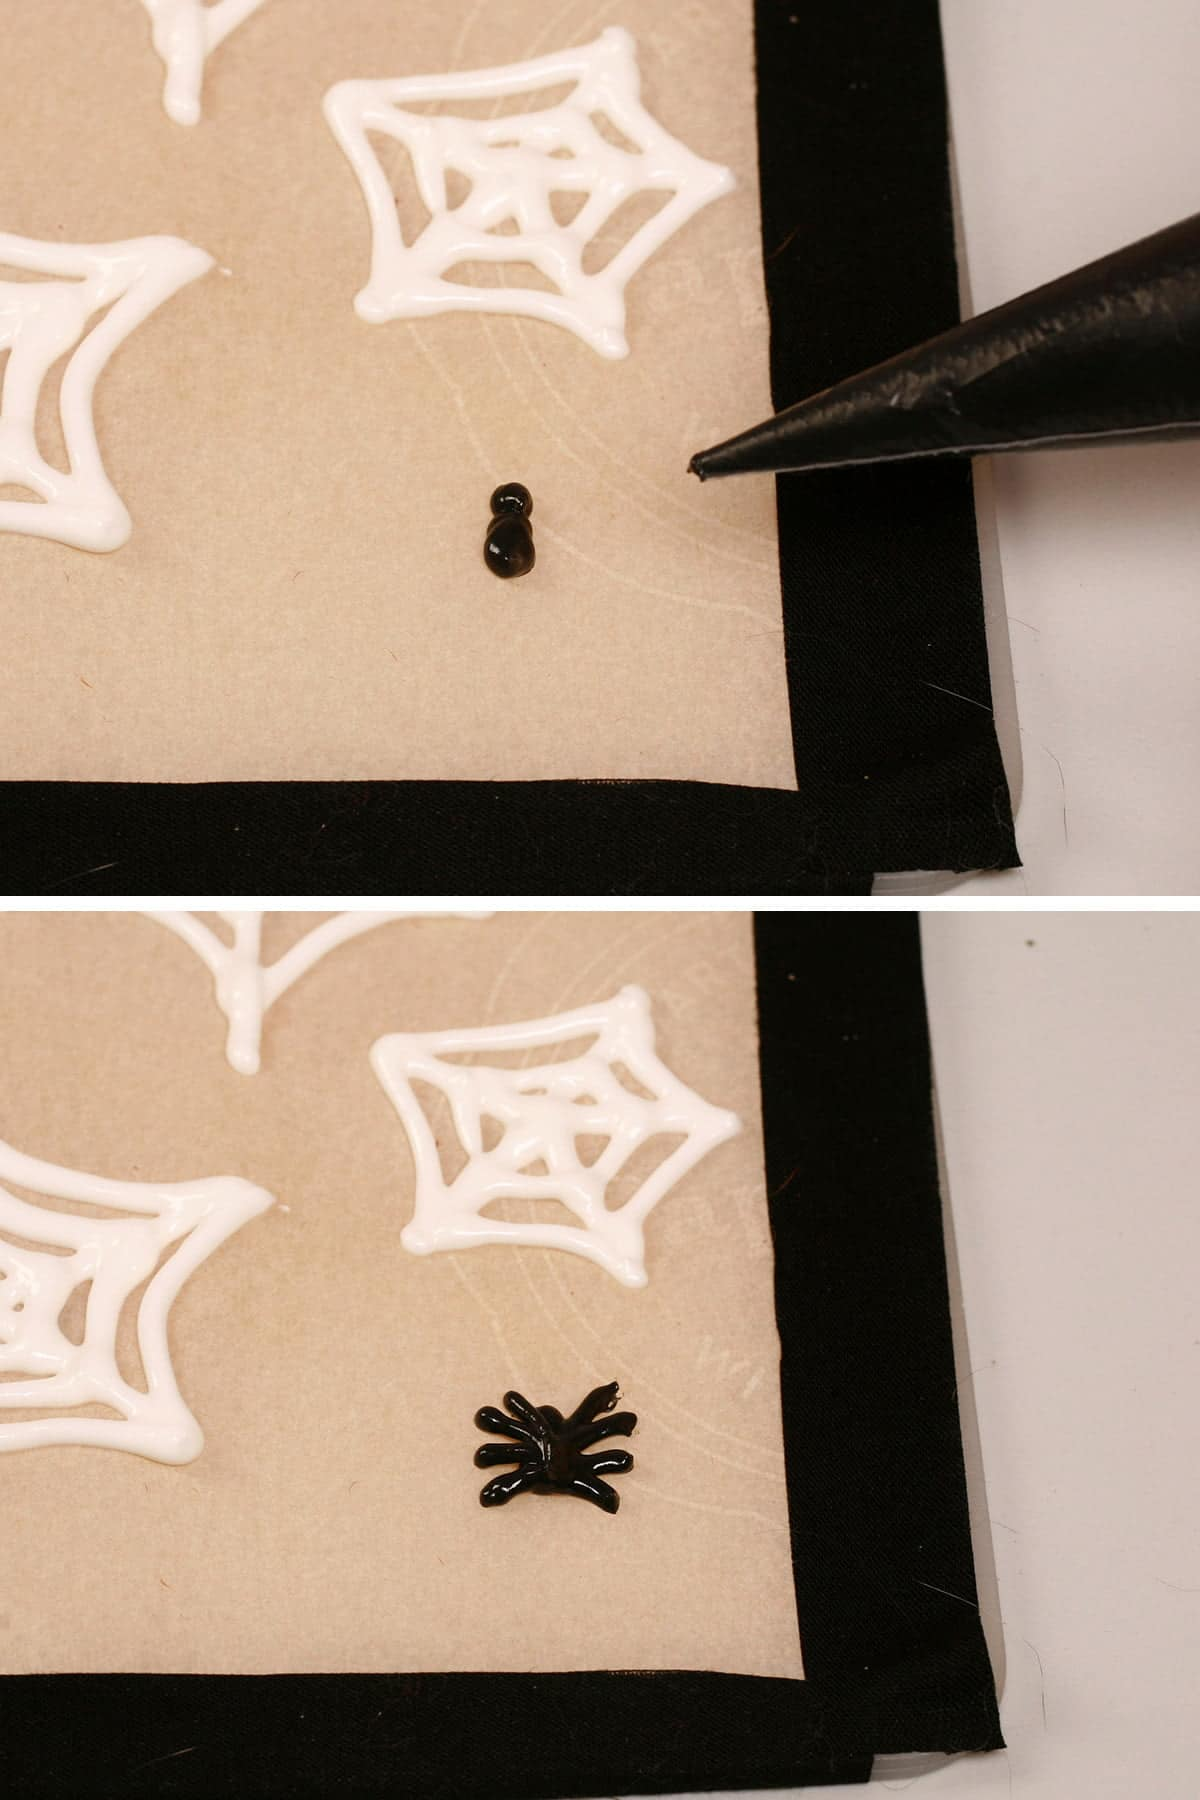 A hand uses a pastry bag full of black royal icing to pipe spiders on a parchment lined baking sheet.